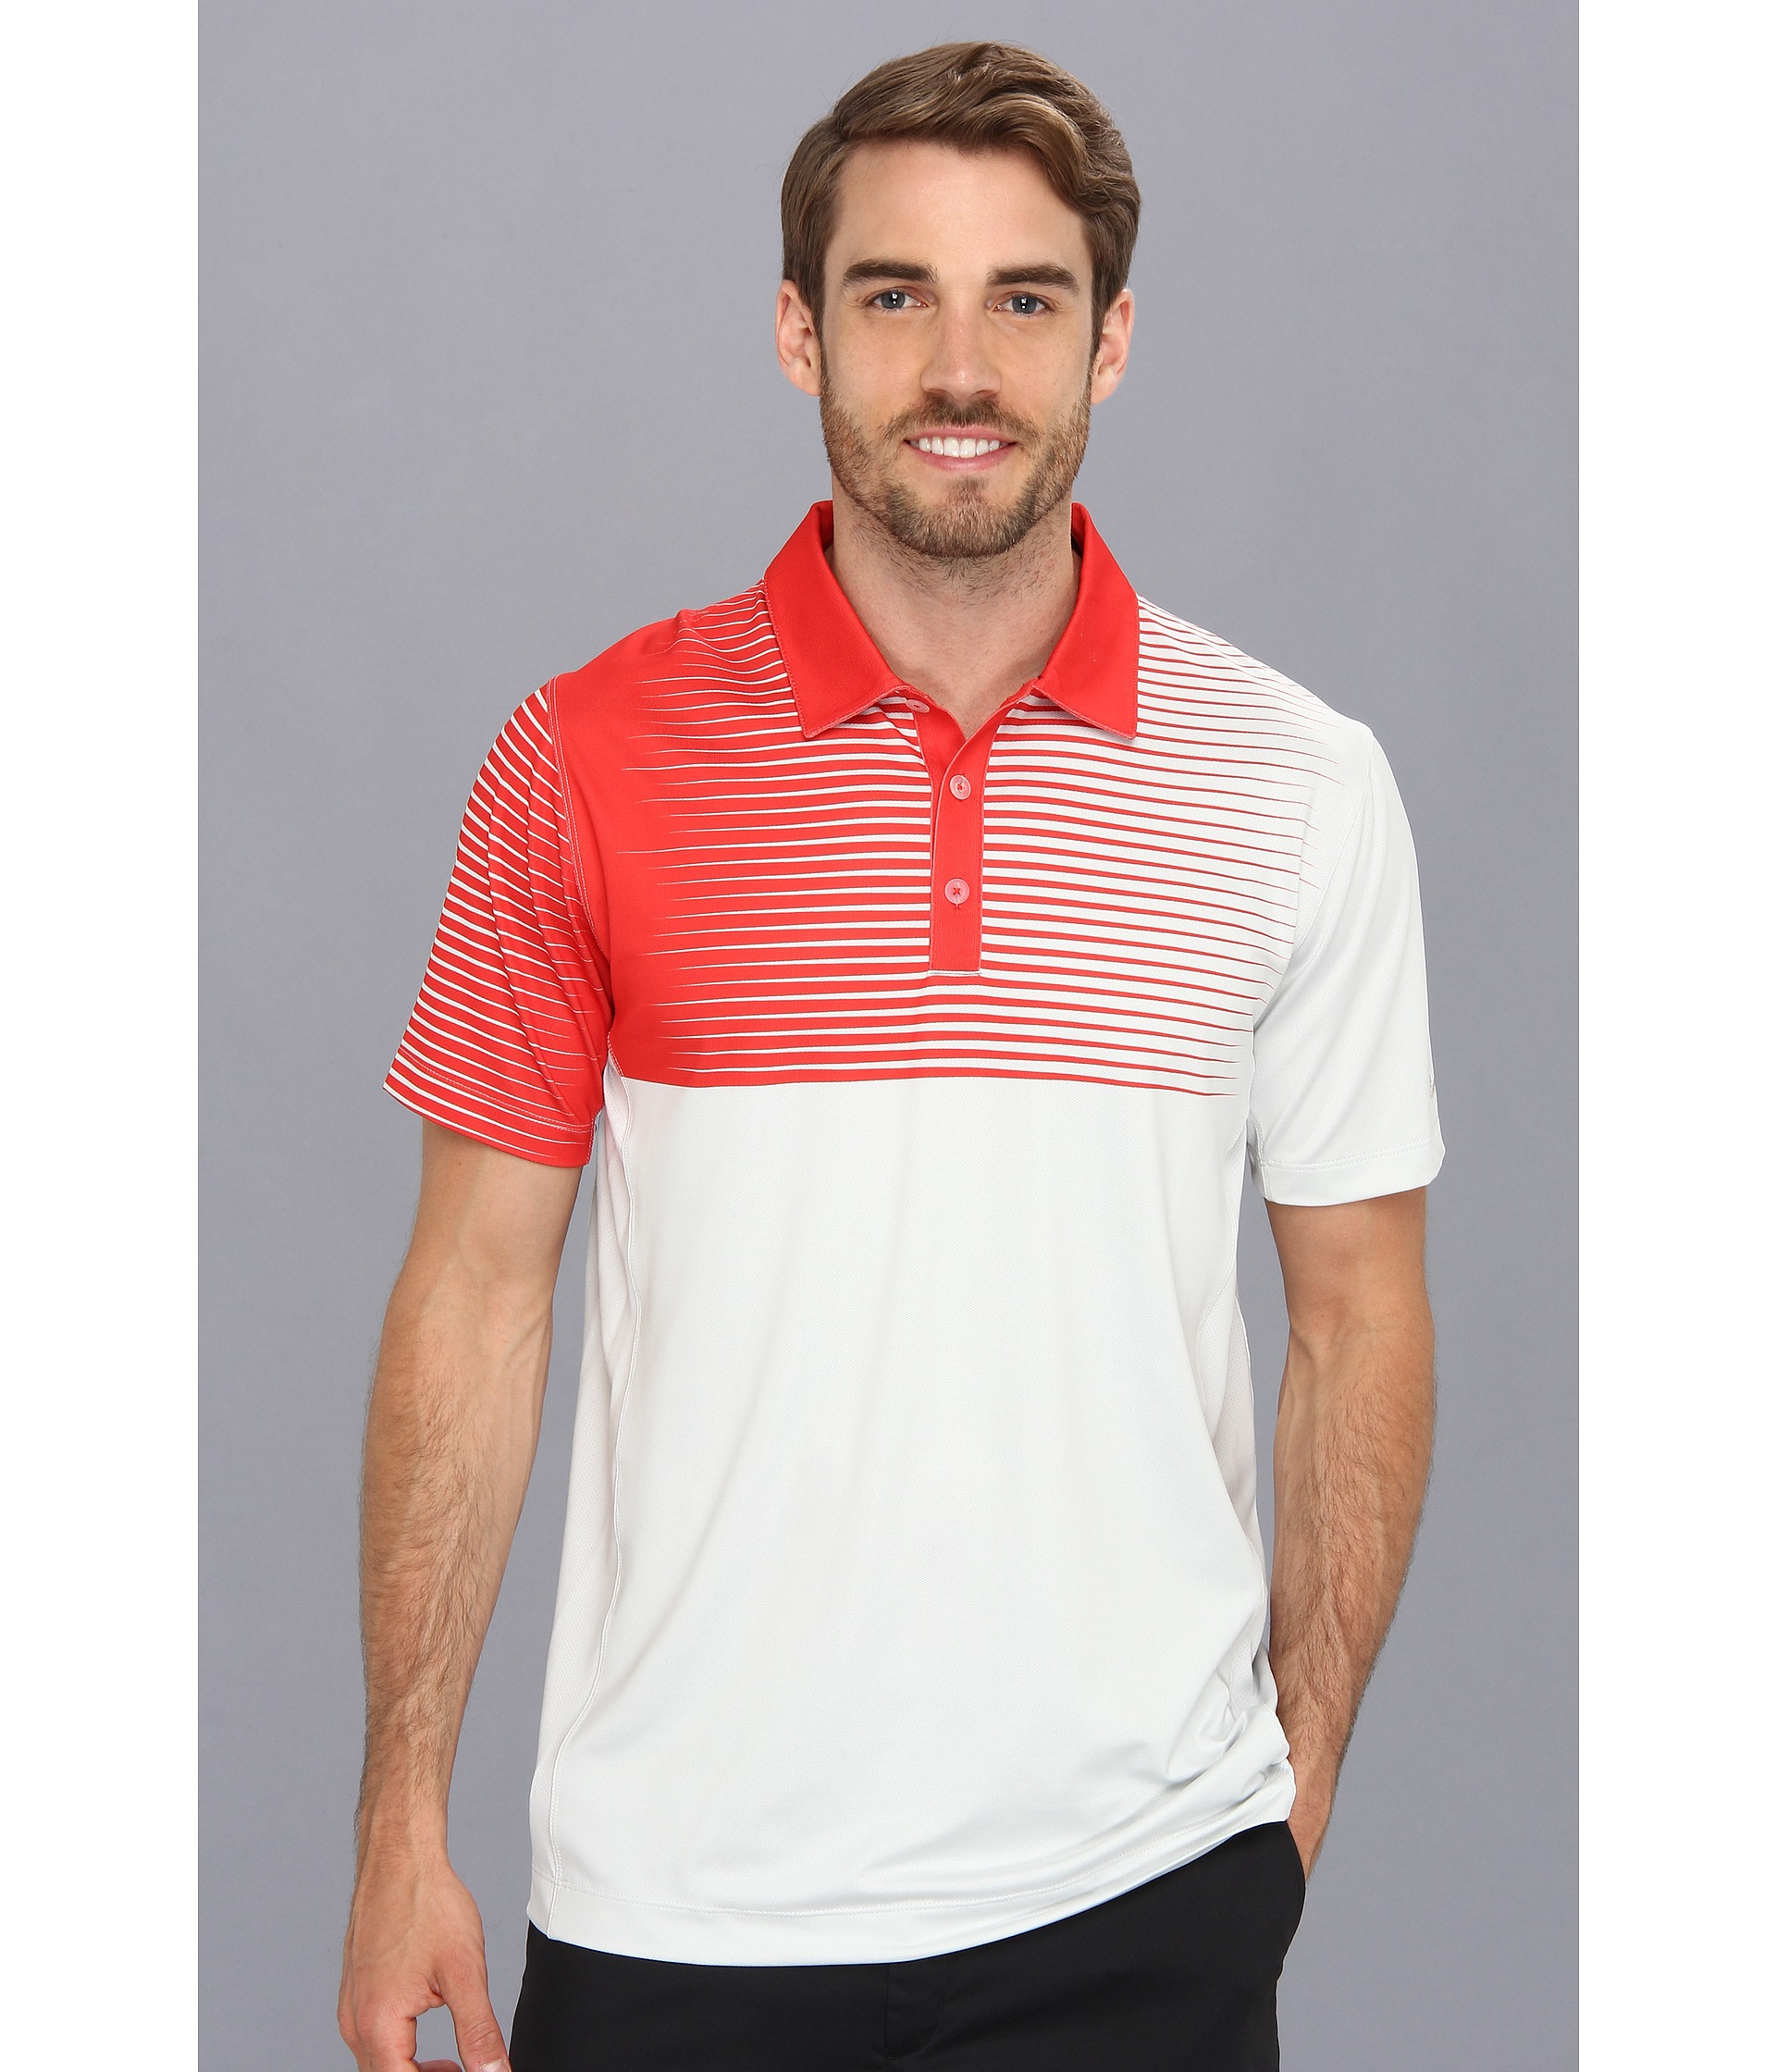 cb9b7160 Nike Innovation Gradient Polo in Red for Men - Lyst